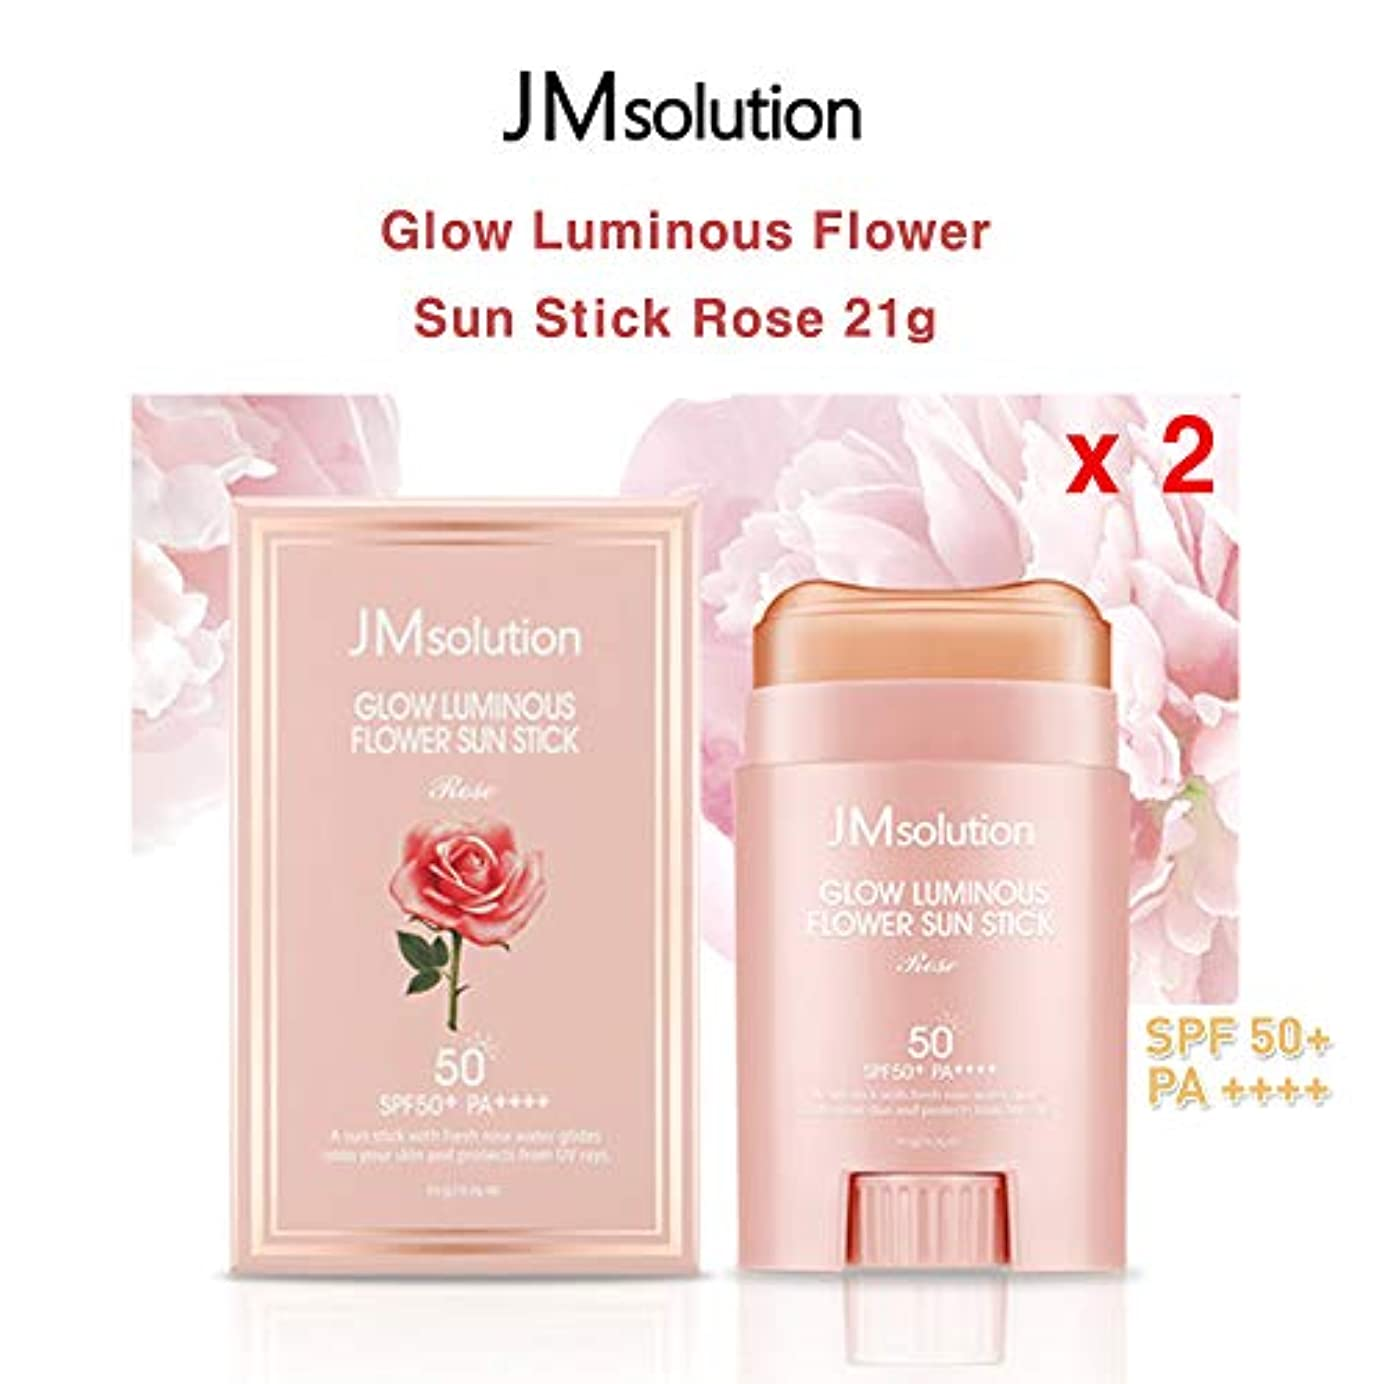 バルーン野心合併JM Solution ★1+1★ Glow Luminous Flower Sun Stick Rose 21g (spf50 PA) 光る輝く花Sun Stick Rose